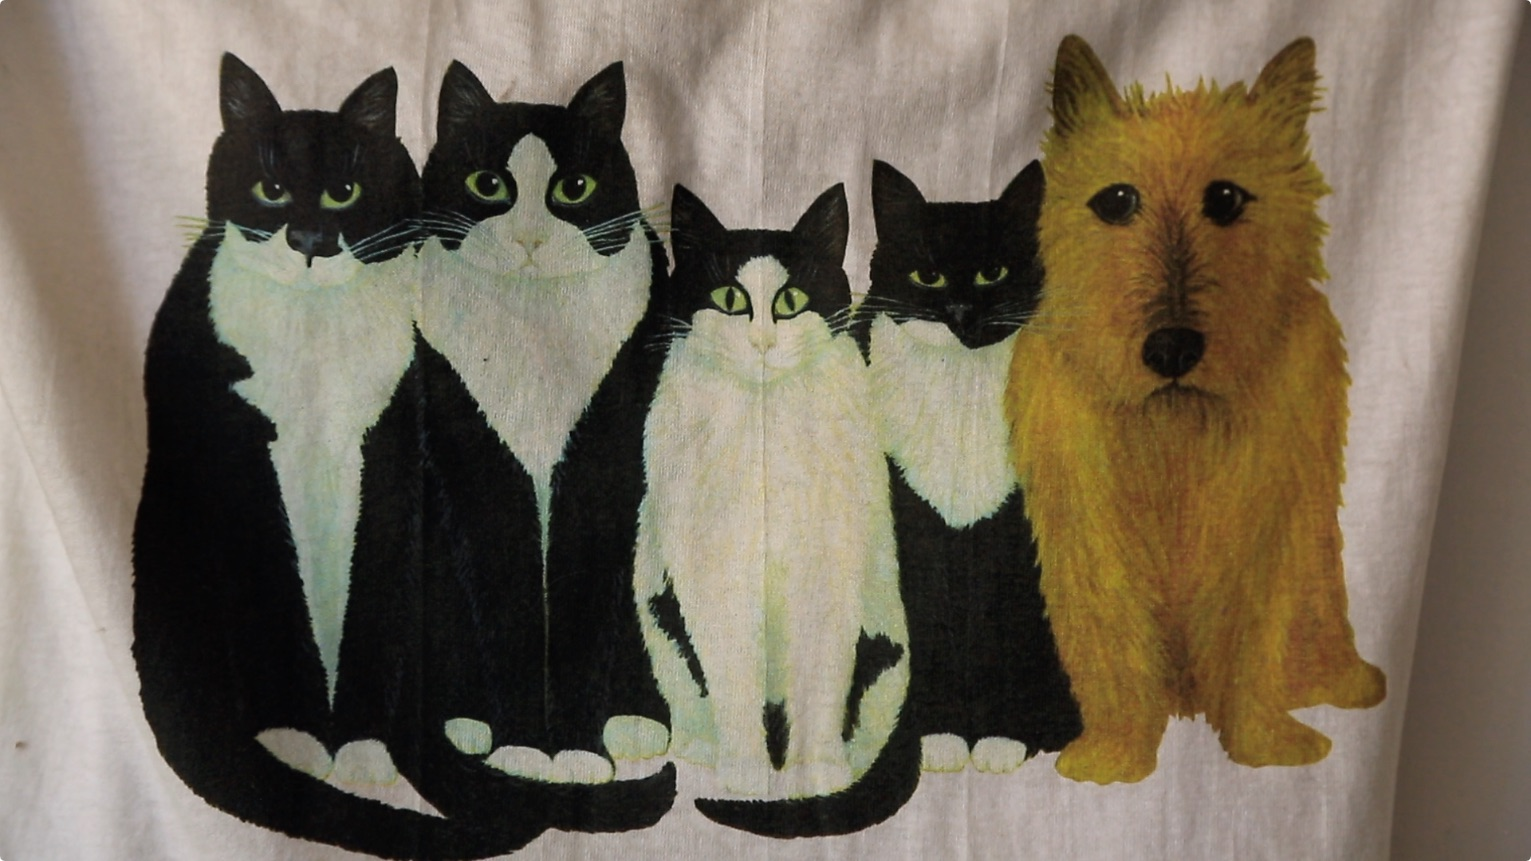 blanket of cats and one dog